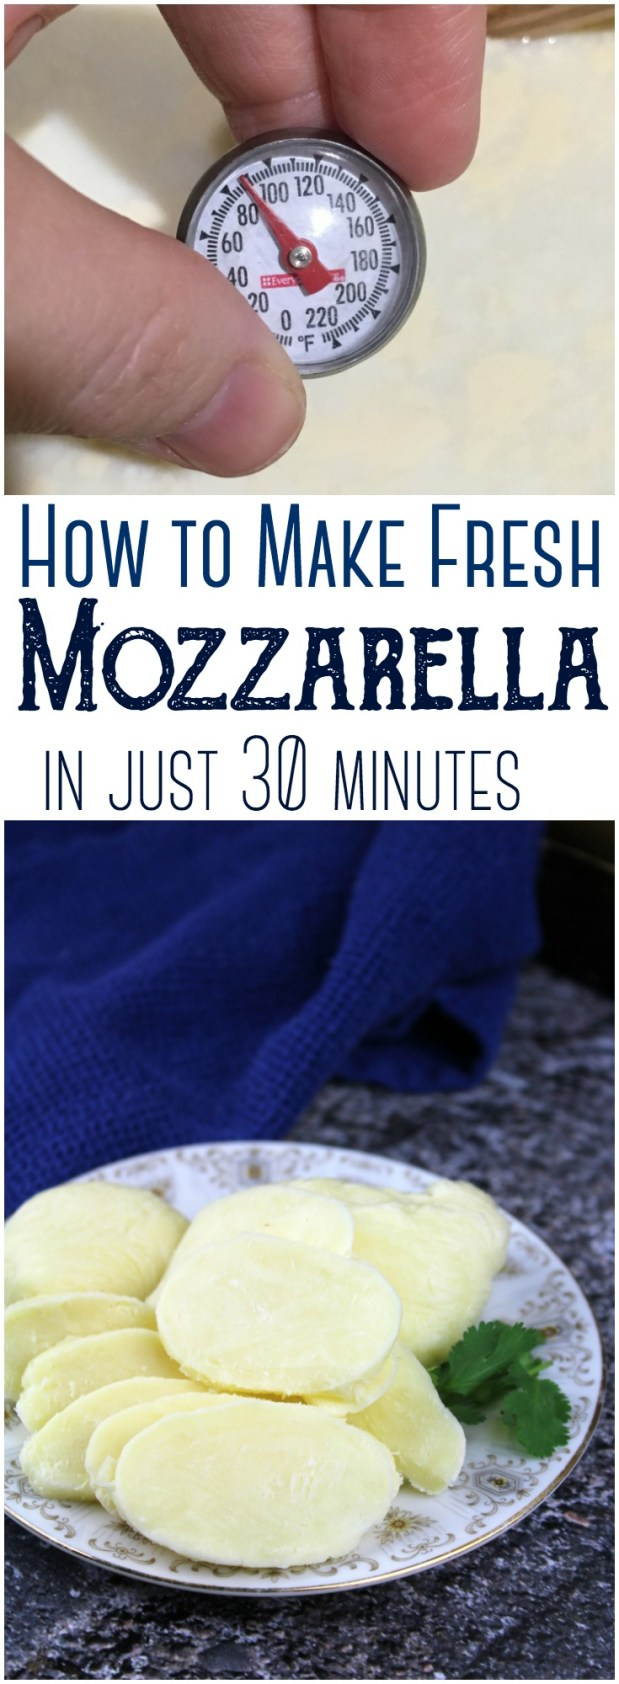 How to Make Fresh Mozzarella: Turn a gallon of raw milk into fresh mozzarella cheese in just under 30 minutes with this complete step-by-step (including pictures!)  #cheese #cheesemaking #rawmilk #mozzarella